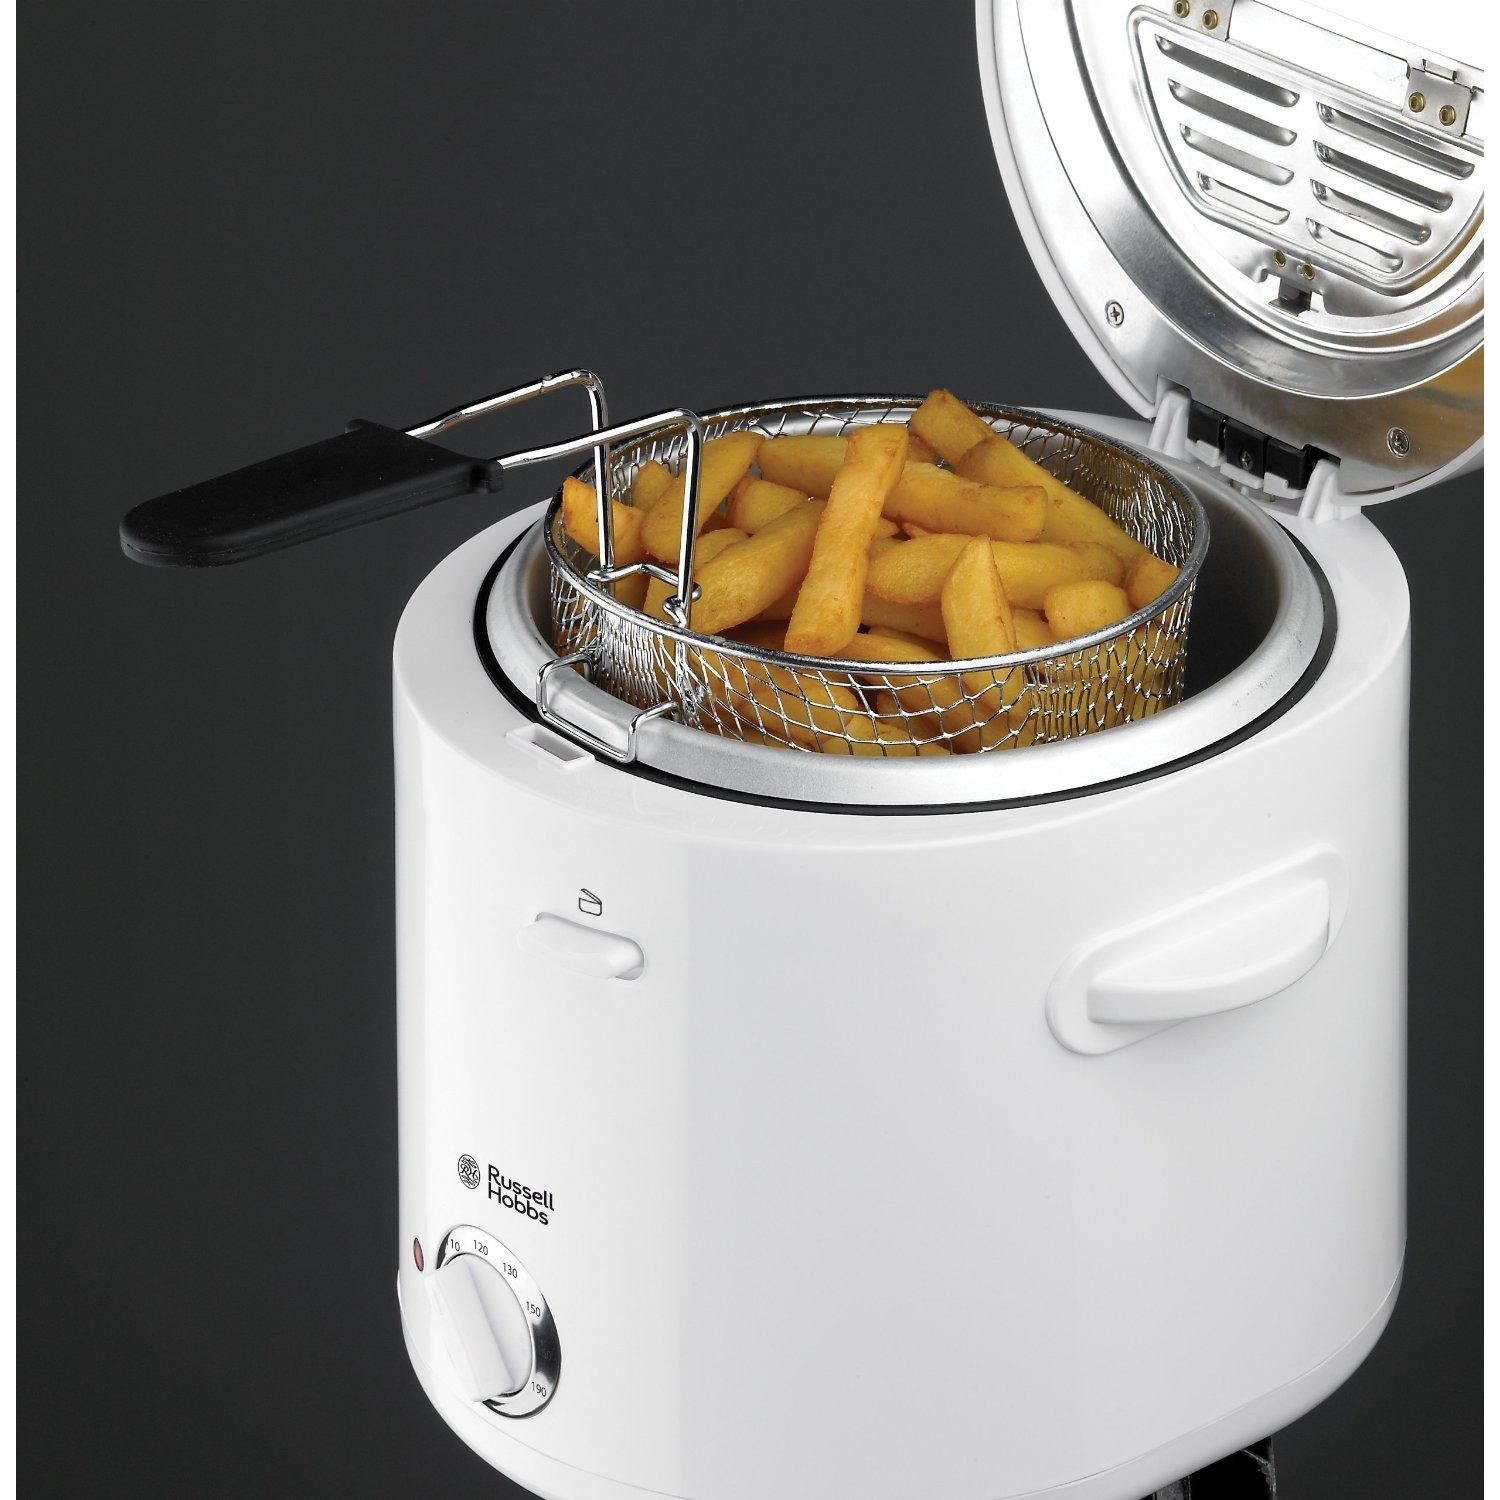 Russell Hobbs - 19760 - Friteuse compact 0,9 L